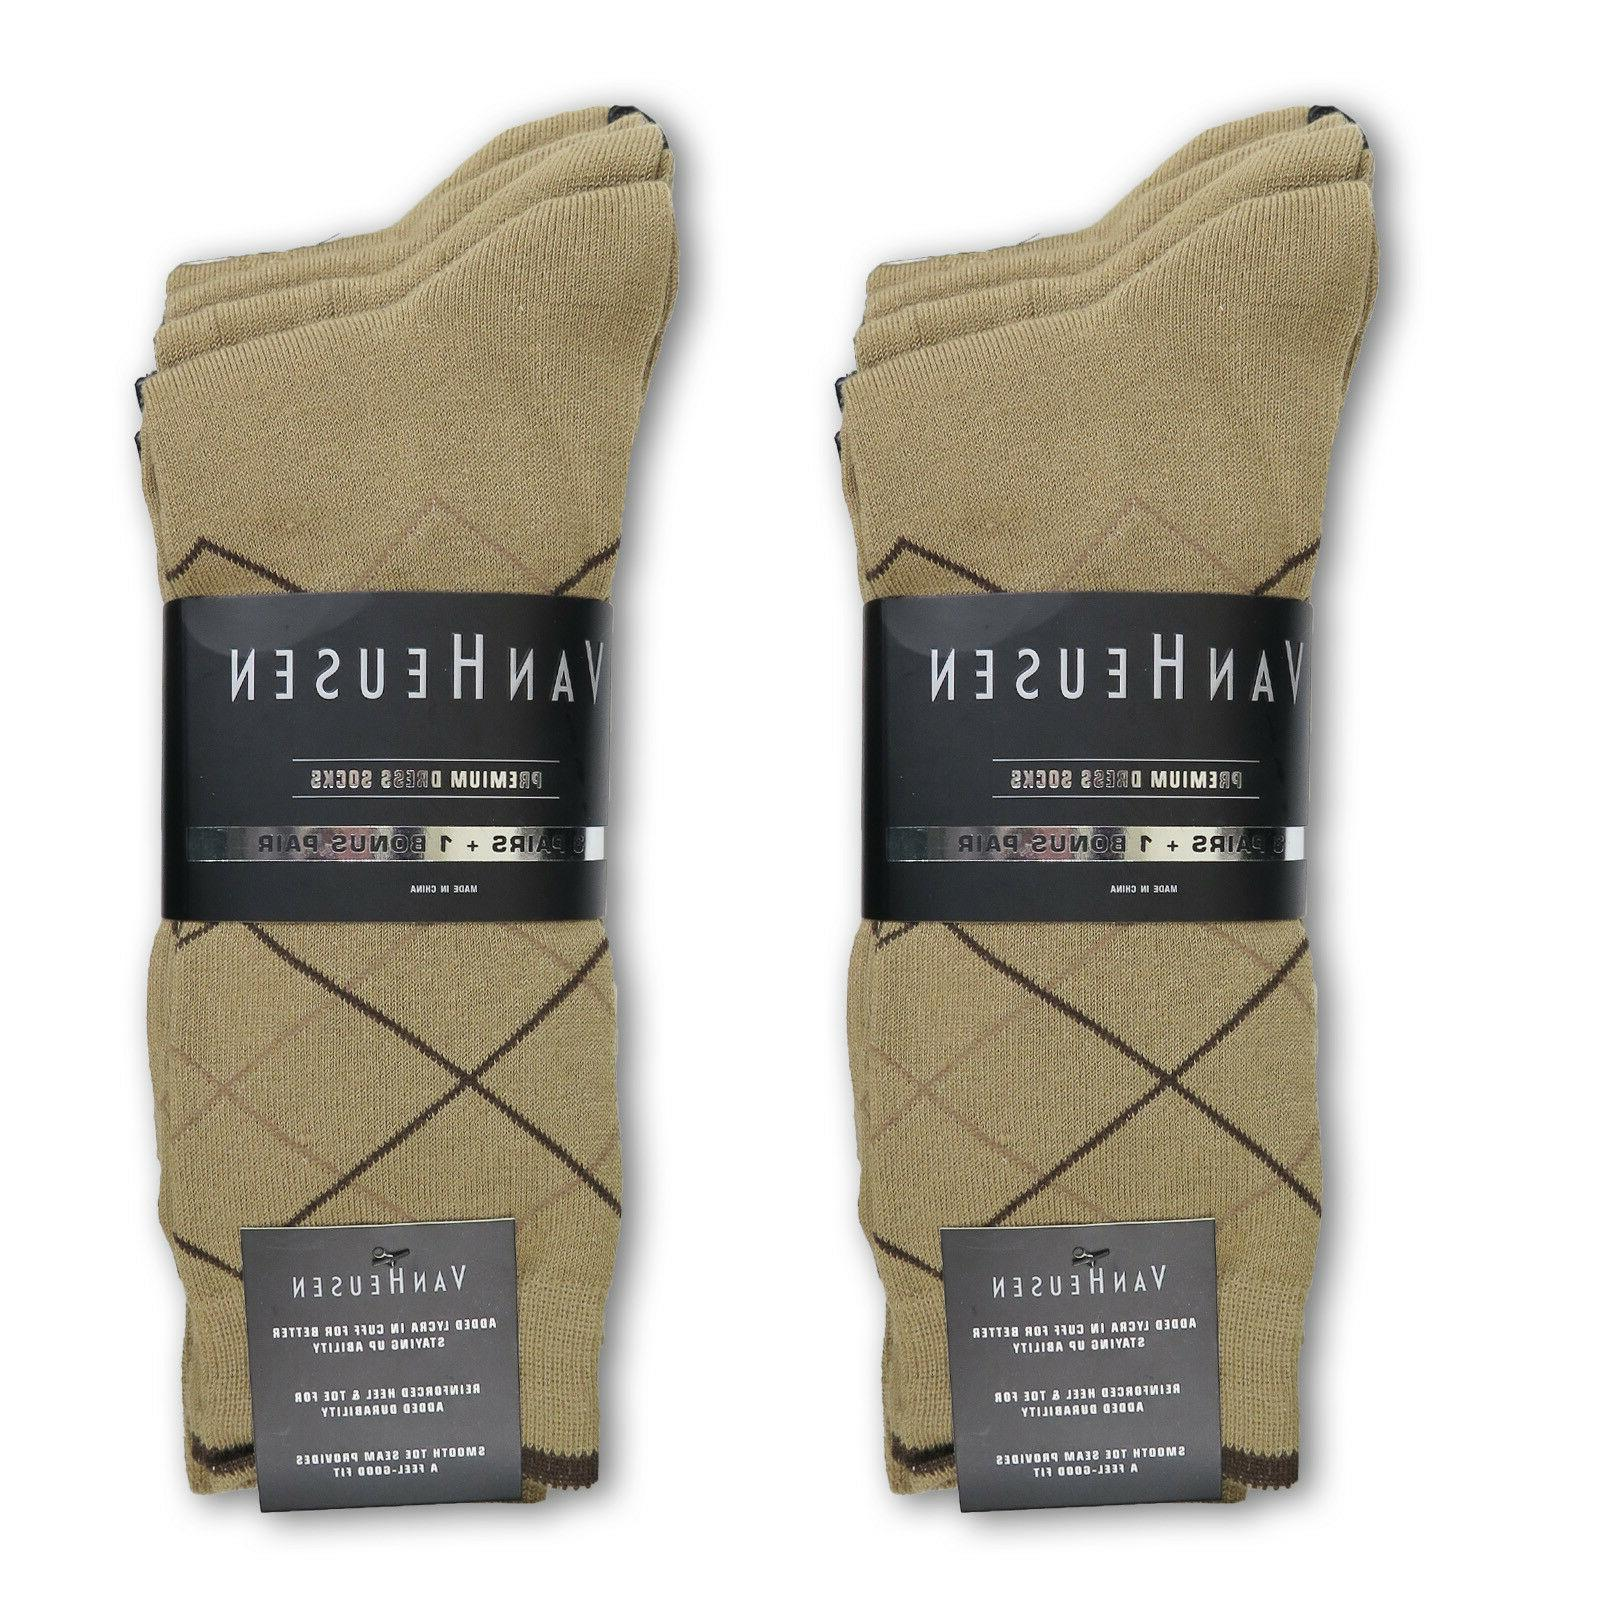 Van Heusen Men's Premium Quality Dress Socks Crew Khaki Col